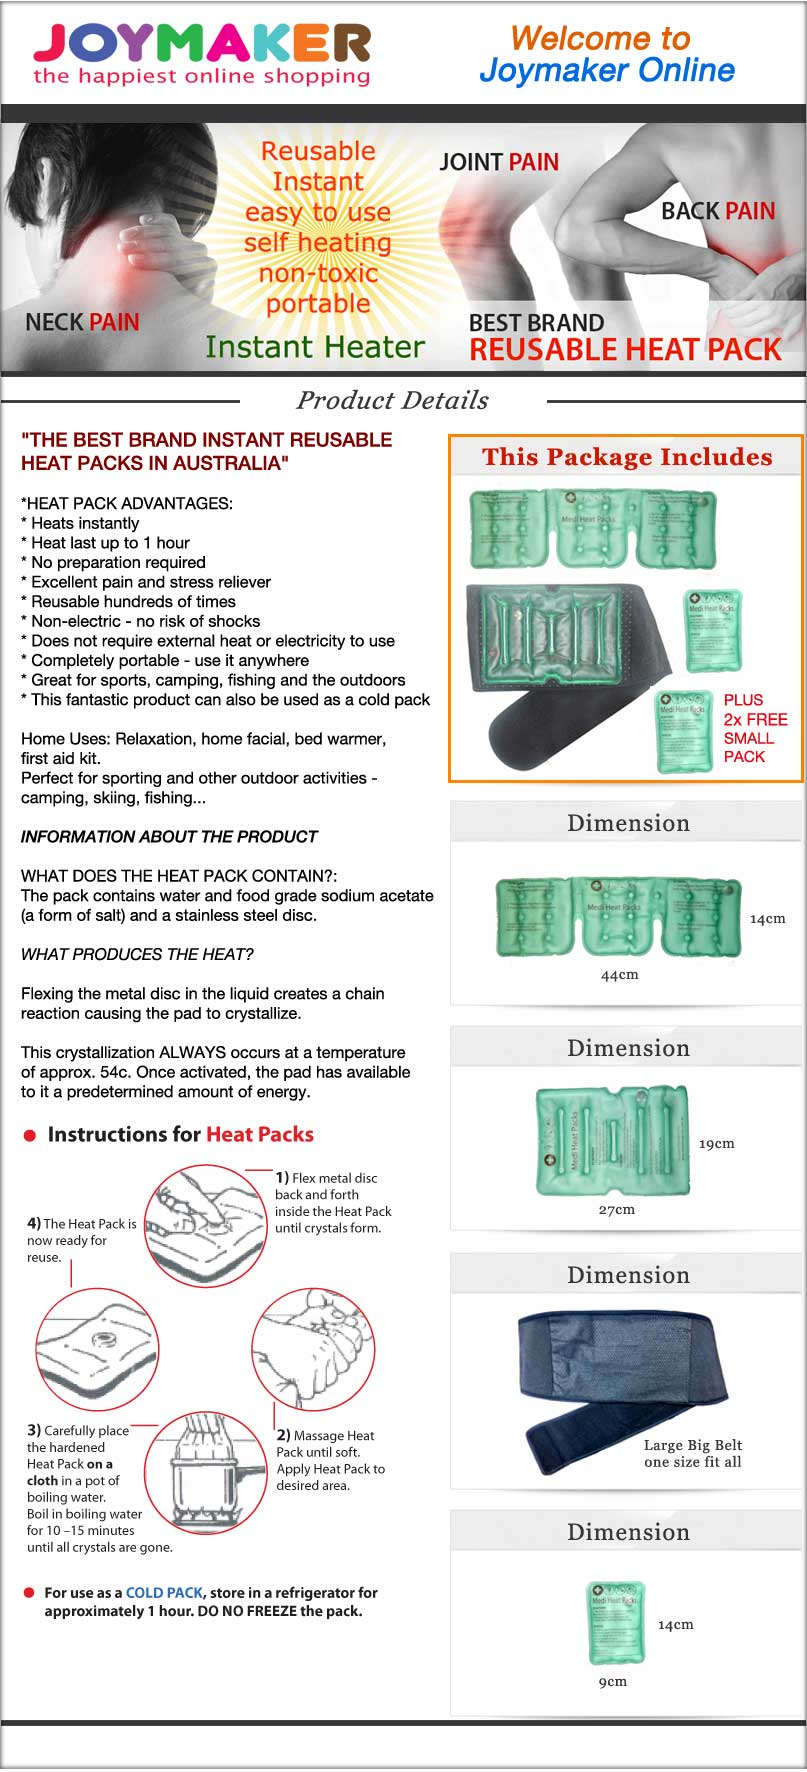 Reusable Button Heat Pack : New brand reusable heat pack family package for back